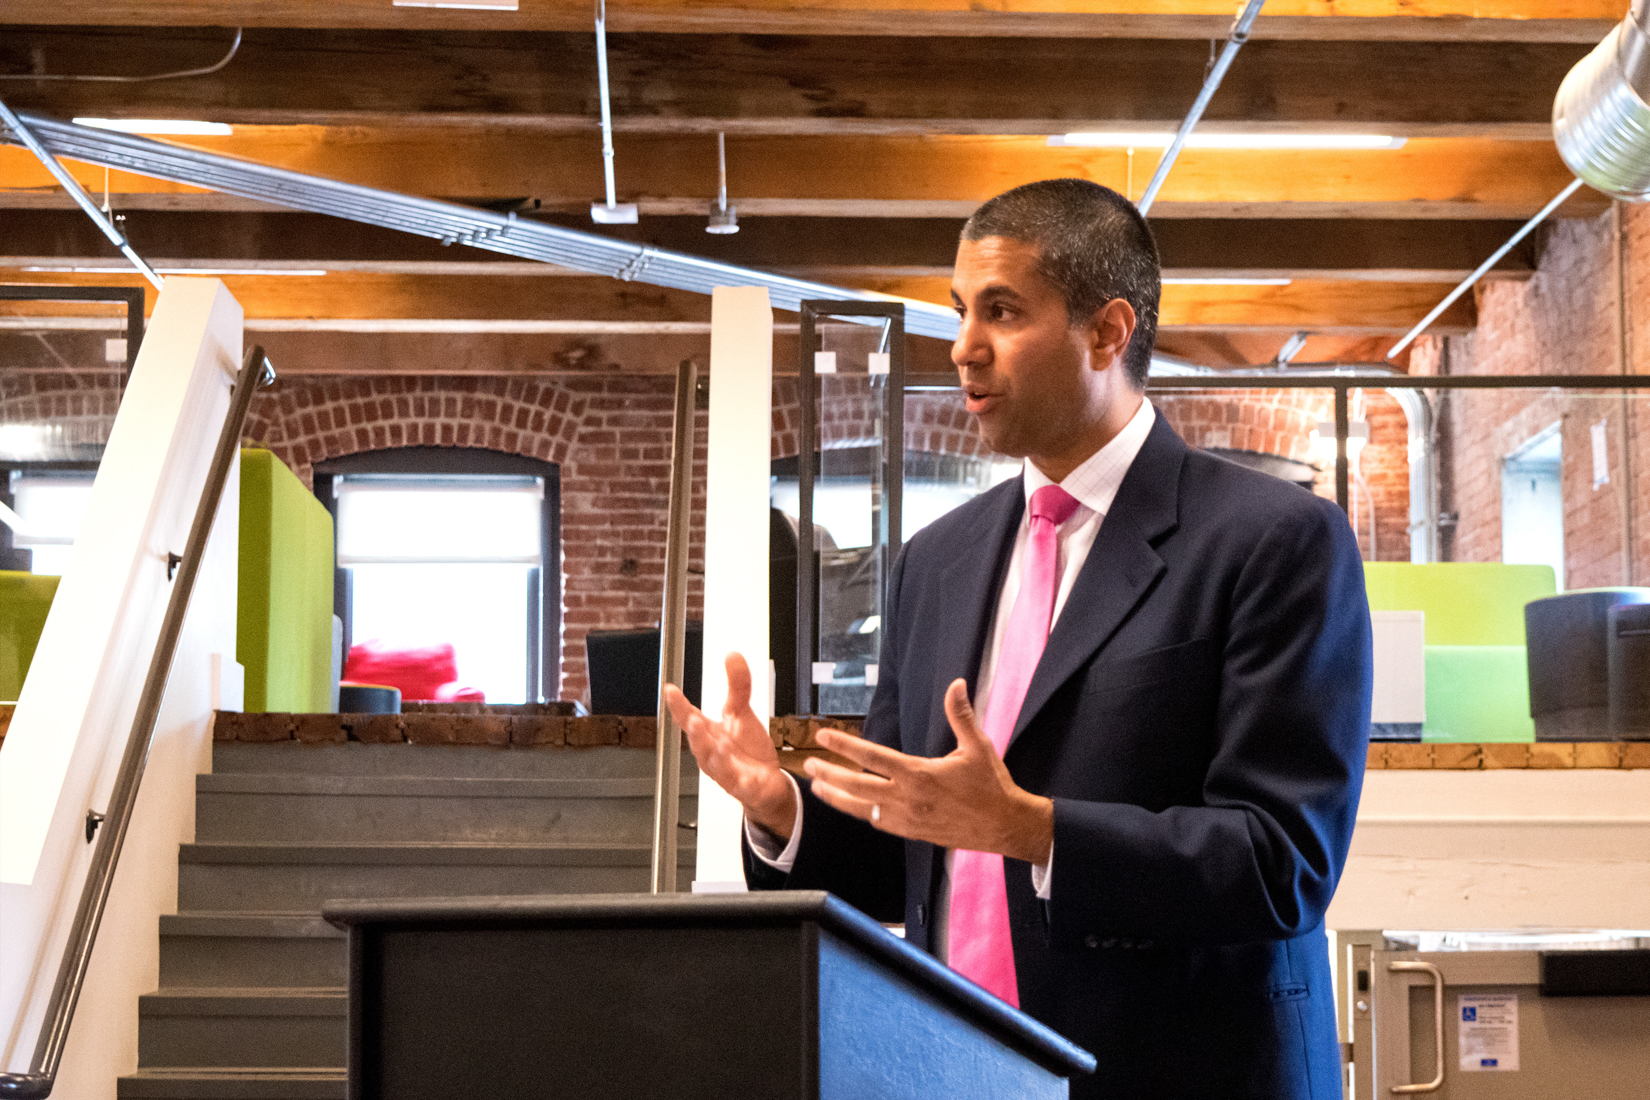 Remarks of FCC Commissioner Ajit Pai on the Need for a Digital Empowerment Agenda at Think Big Partners